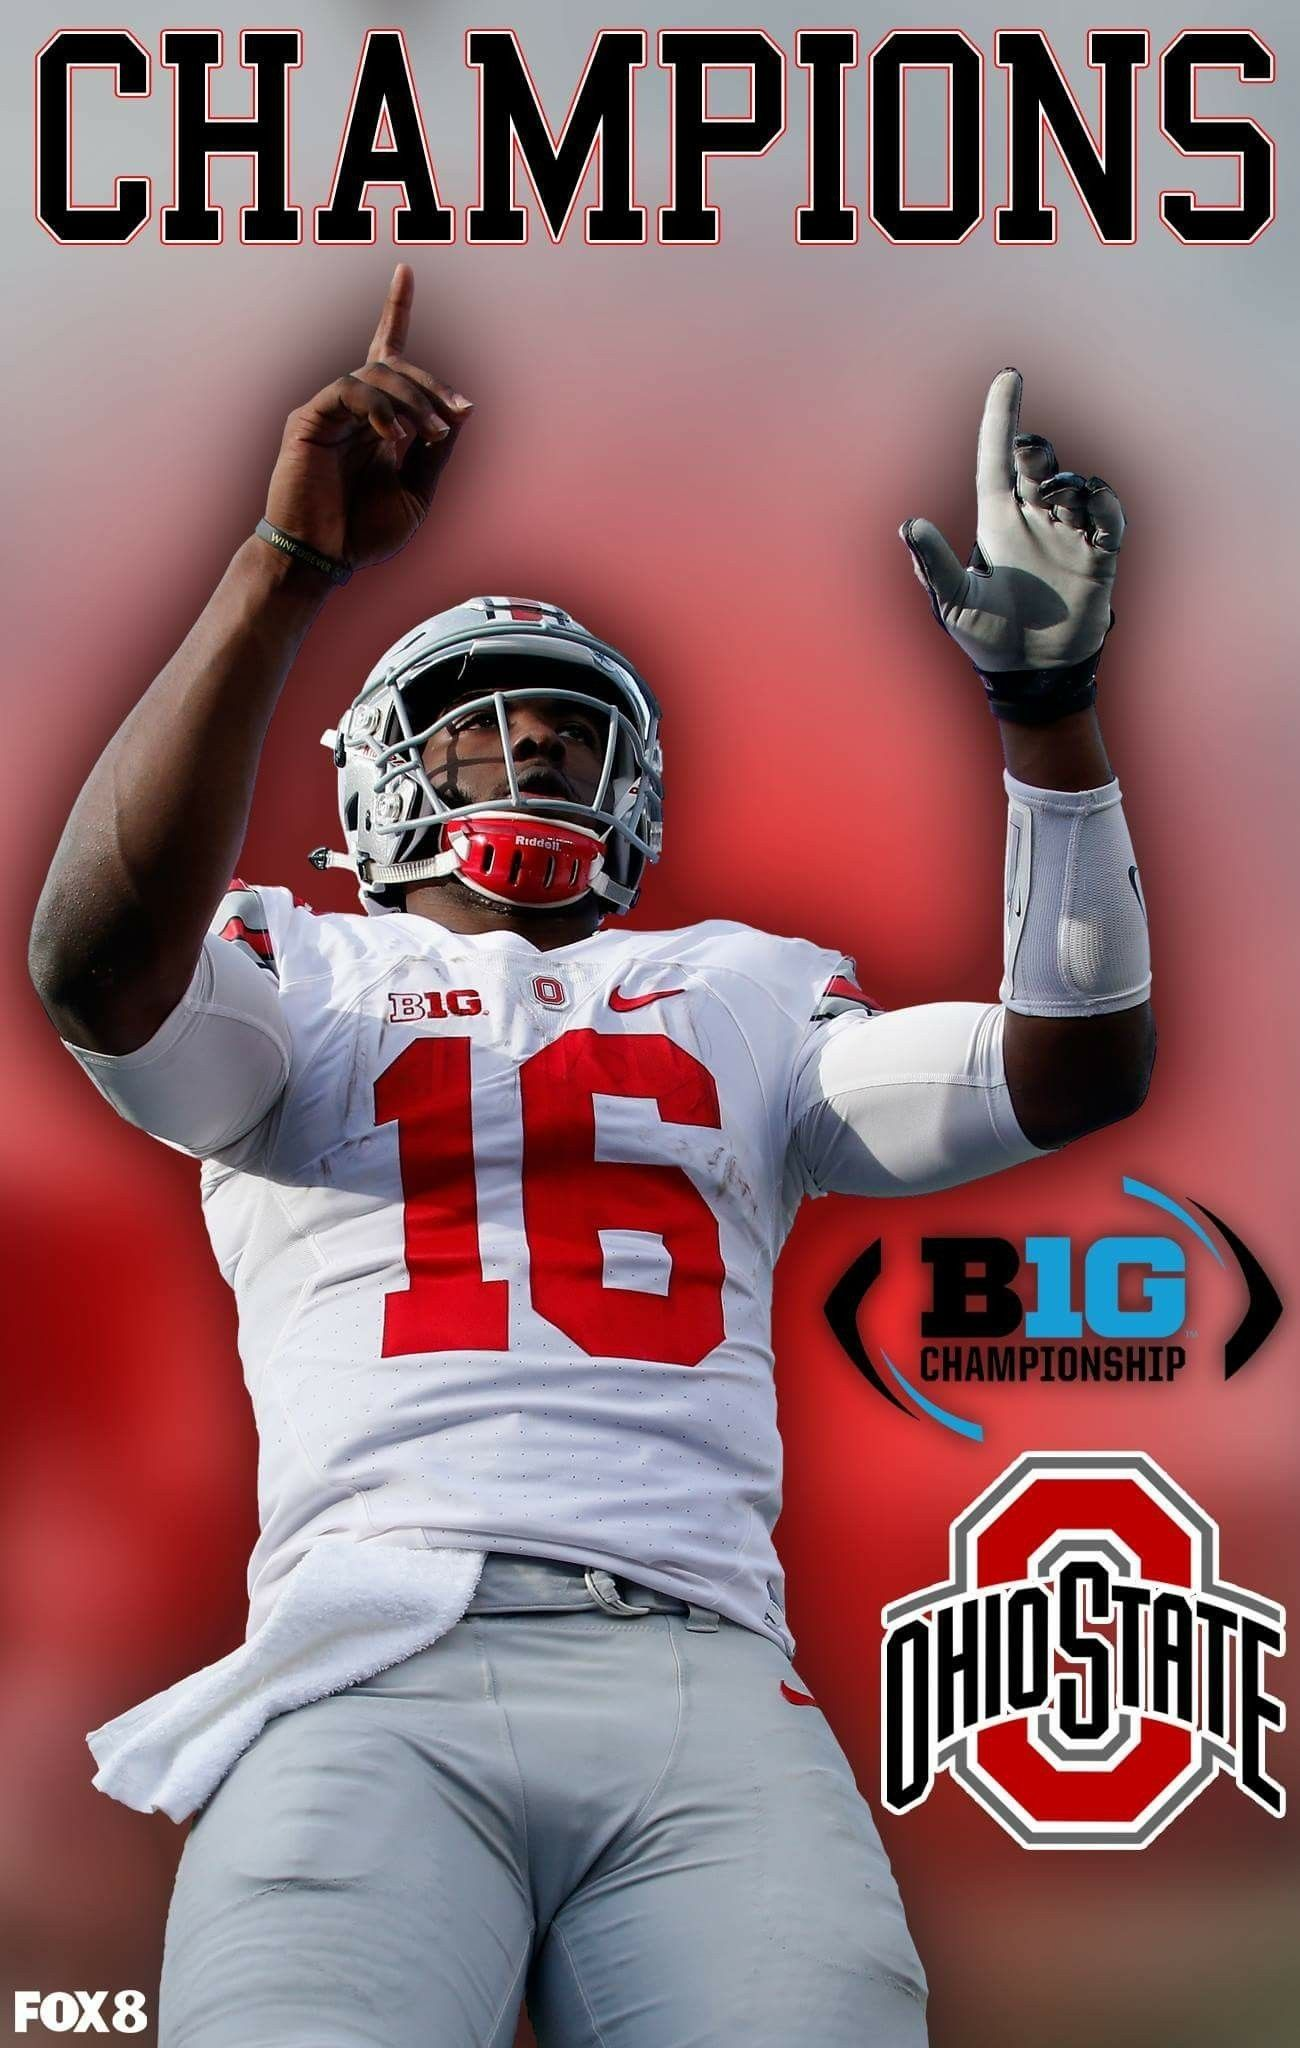 Inspirational College Football Teams Wallpaper Check More At Https Zdwebhosting Com Co In 2020 Ohio State Football Ohio State Ohio State Football Wallpaper